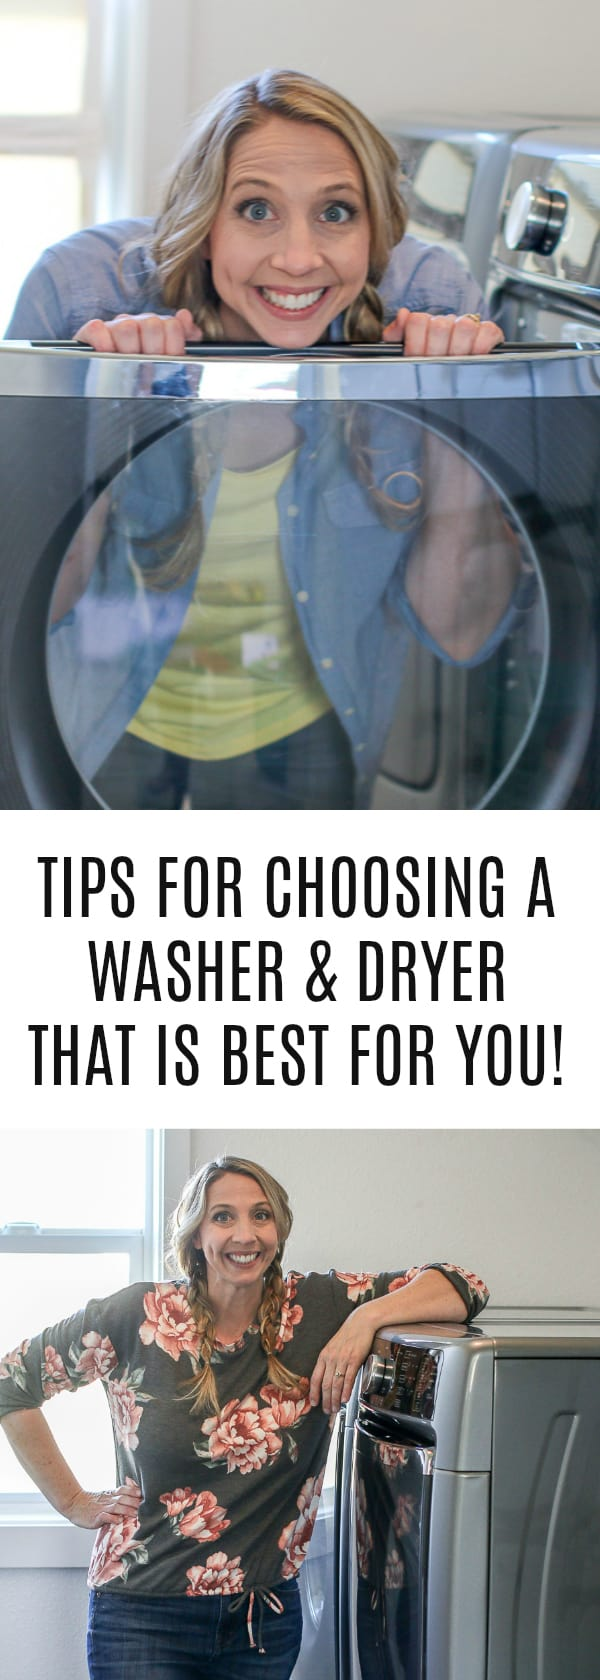 #sponsored How to choose a washer and dryer set that is best for you! Best tips & strategies plus I reveal the Maytag laundry set I picked out and why it's the best choice for me! If you are in the market for a new set too and on a budget, it's important to do your research!